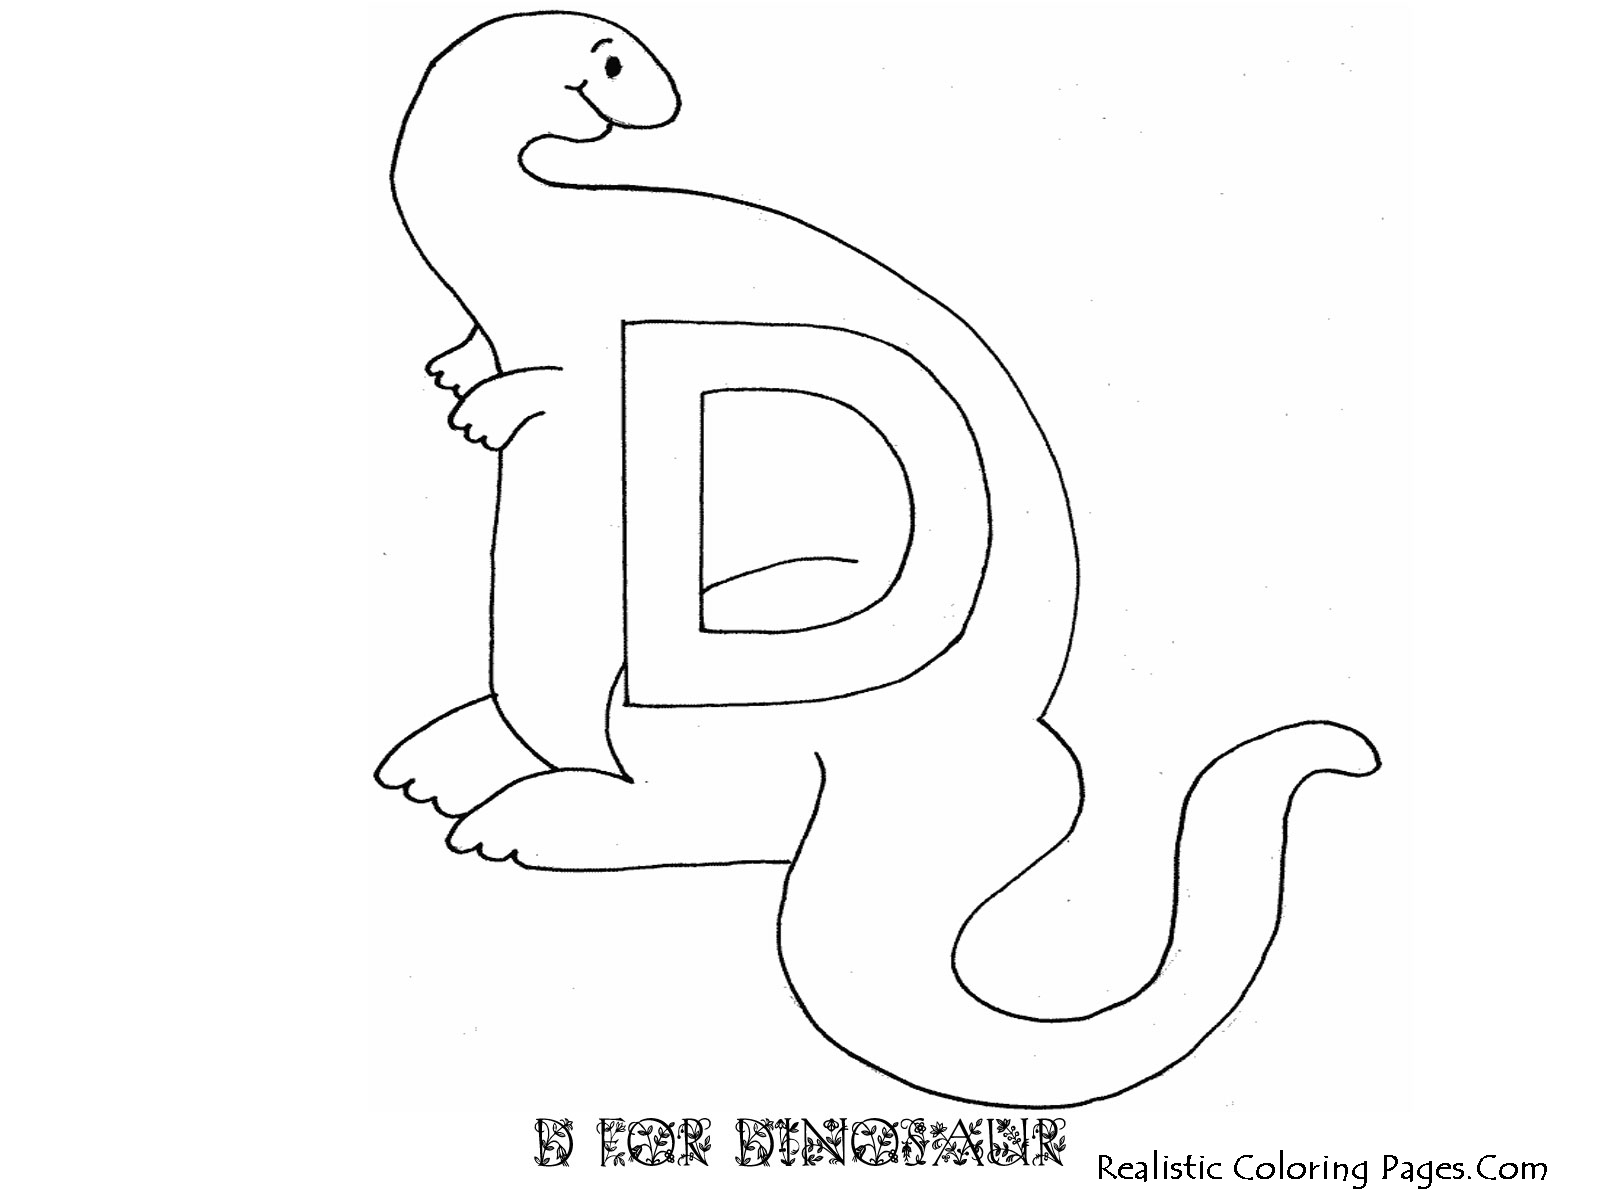 coloring pages alphabet a - d letters alphabet coloring pages realistic coloring pages